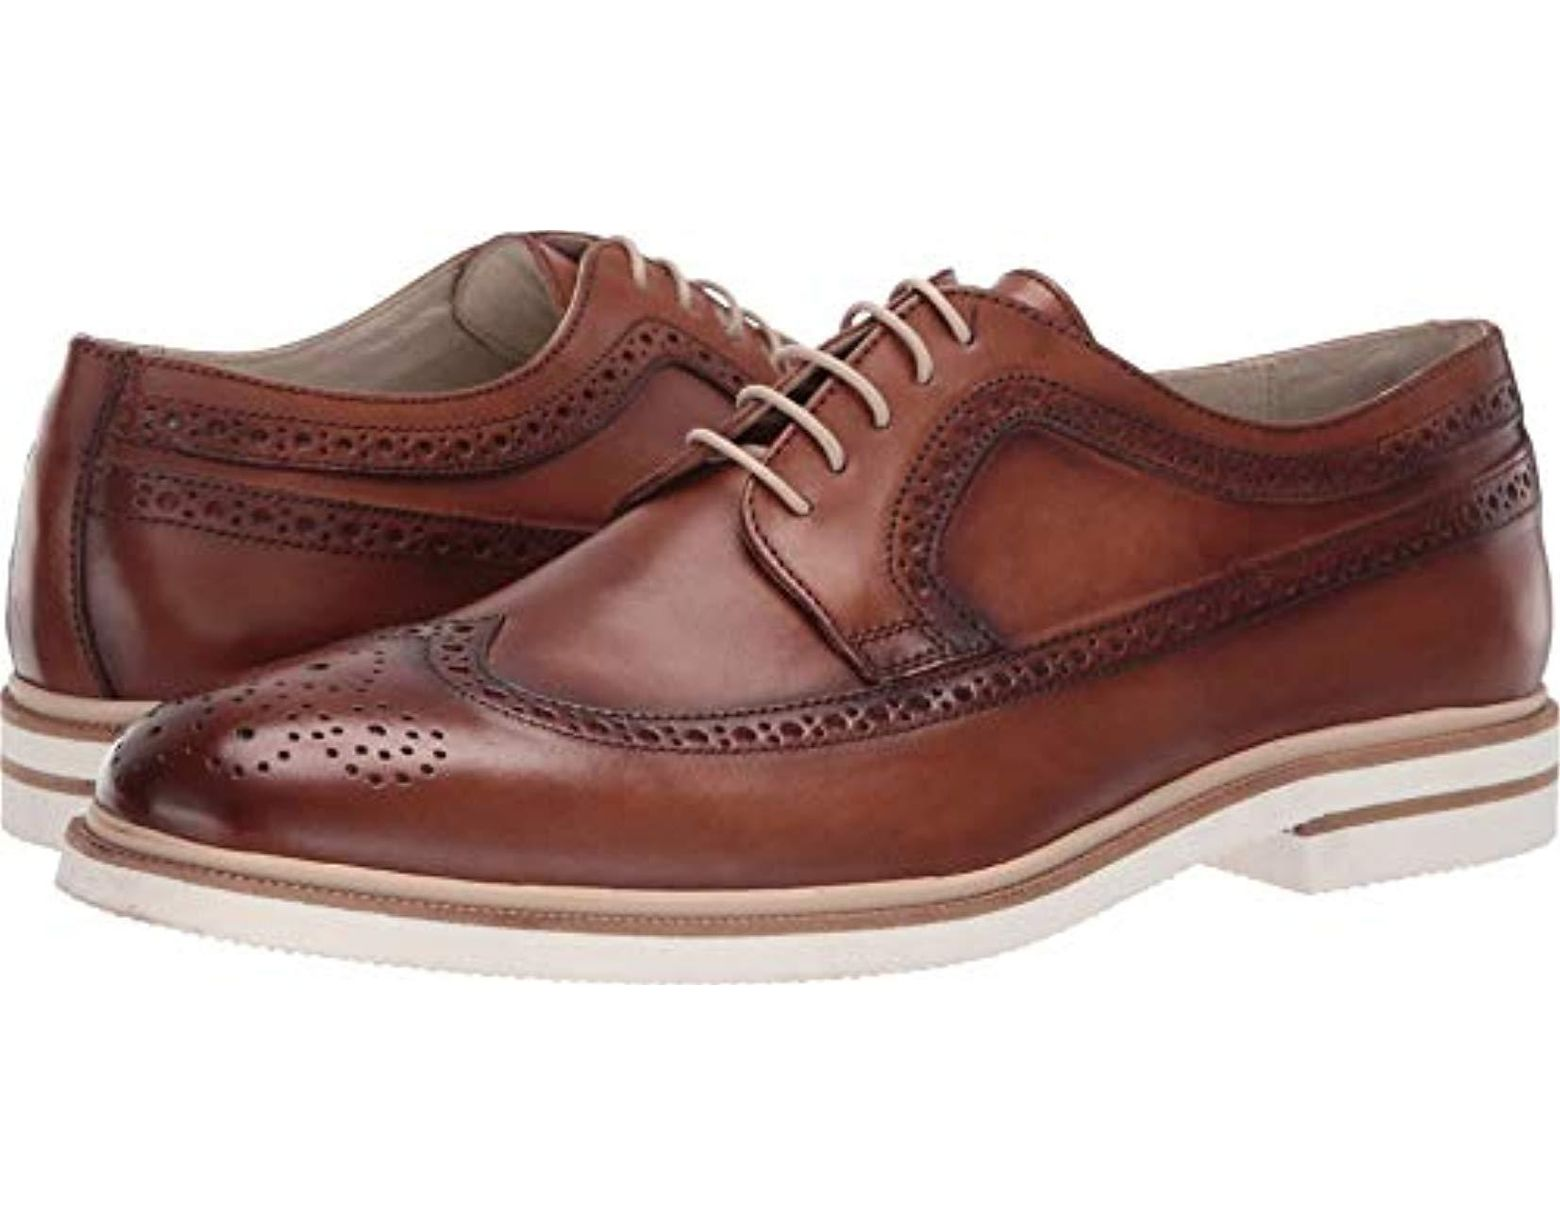 c1b1b3e3cf47 Kenneth Cole Vertical Lace Up Oxford in Brown for Men - Lyst